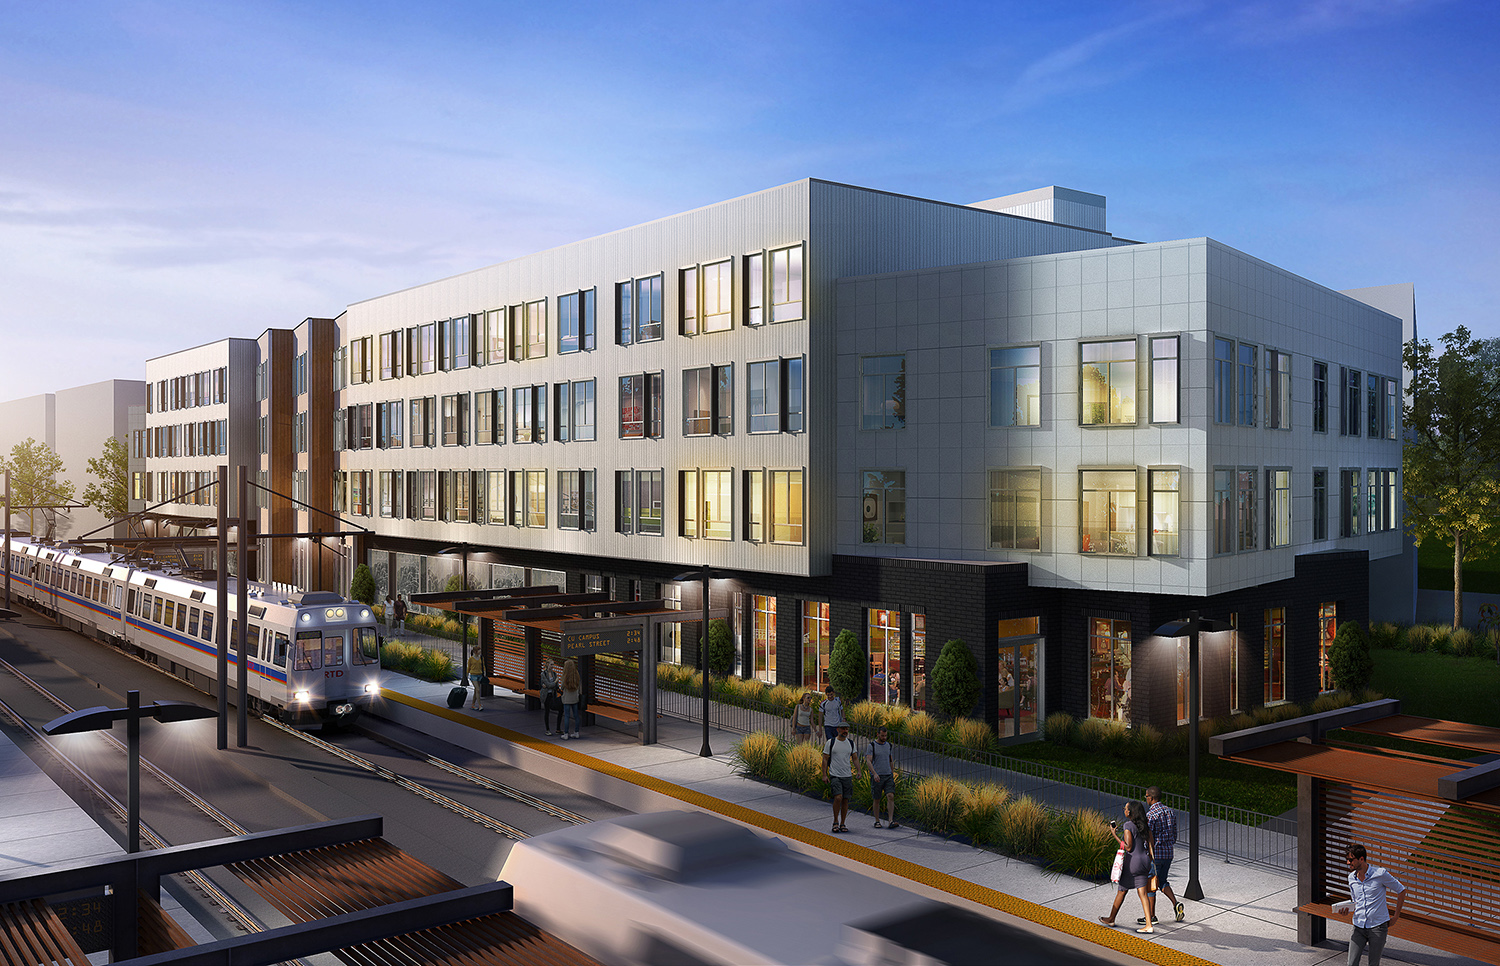 The John Buck Company and Element Properties Break Ground on New, KTGY-Designed Sustainable 86-Unit Apartment Community in Boulder's Transit-Oriented S'PARK Neighborhood